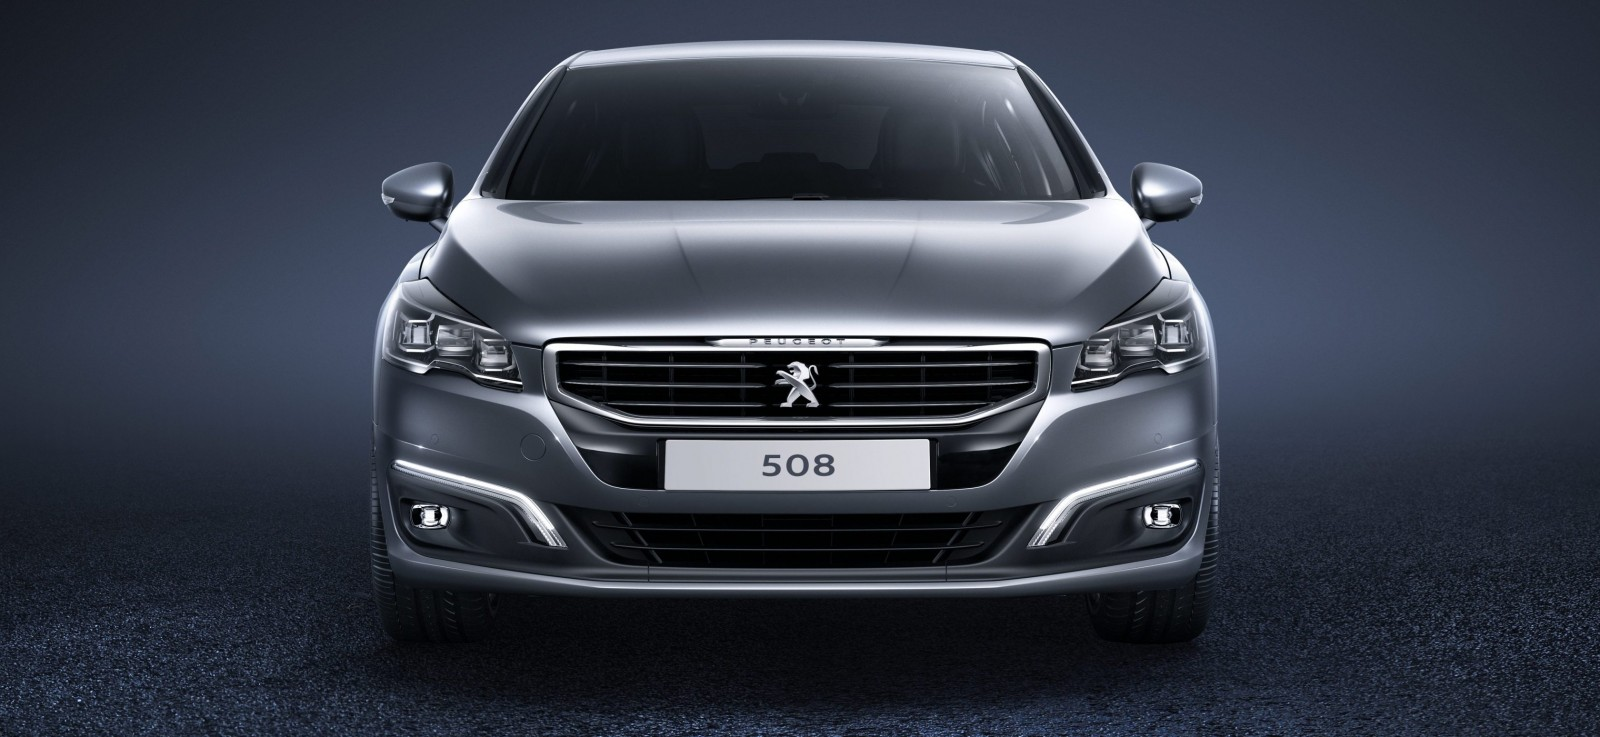 2015 Peugeot 508 Facelifted With New LED DRLs, Box-Design Beams and Tweaked Cabin Tech 4